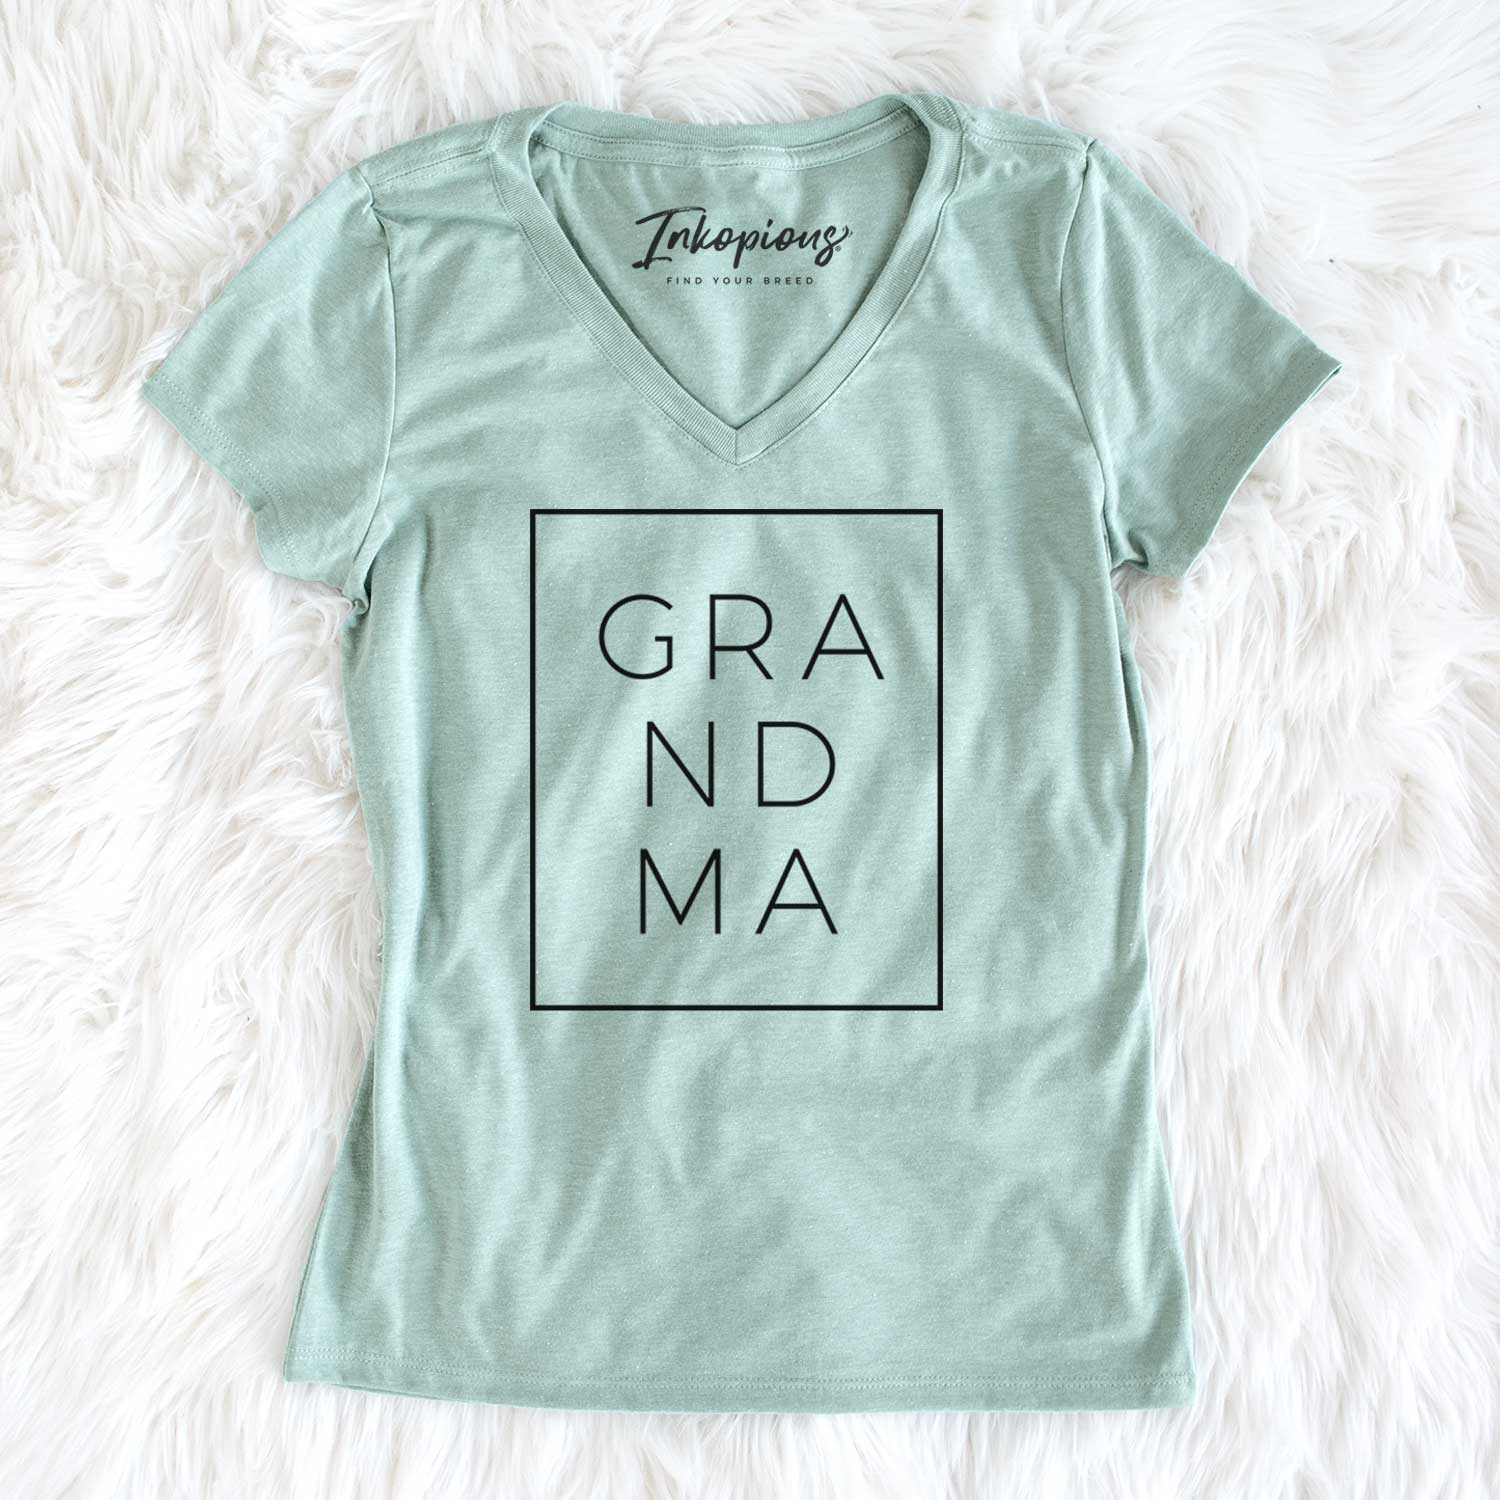 Grandma Boxed  - Women's Perfect V-neck Shirt